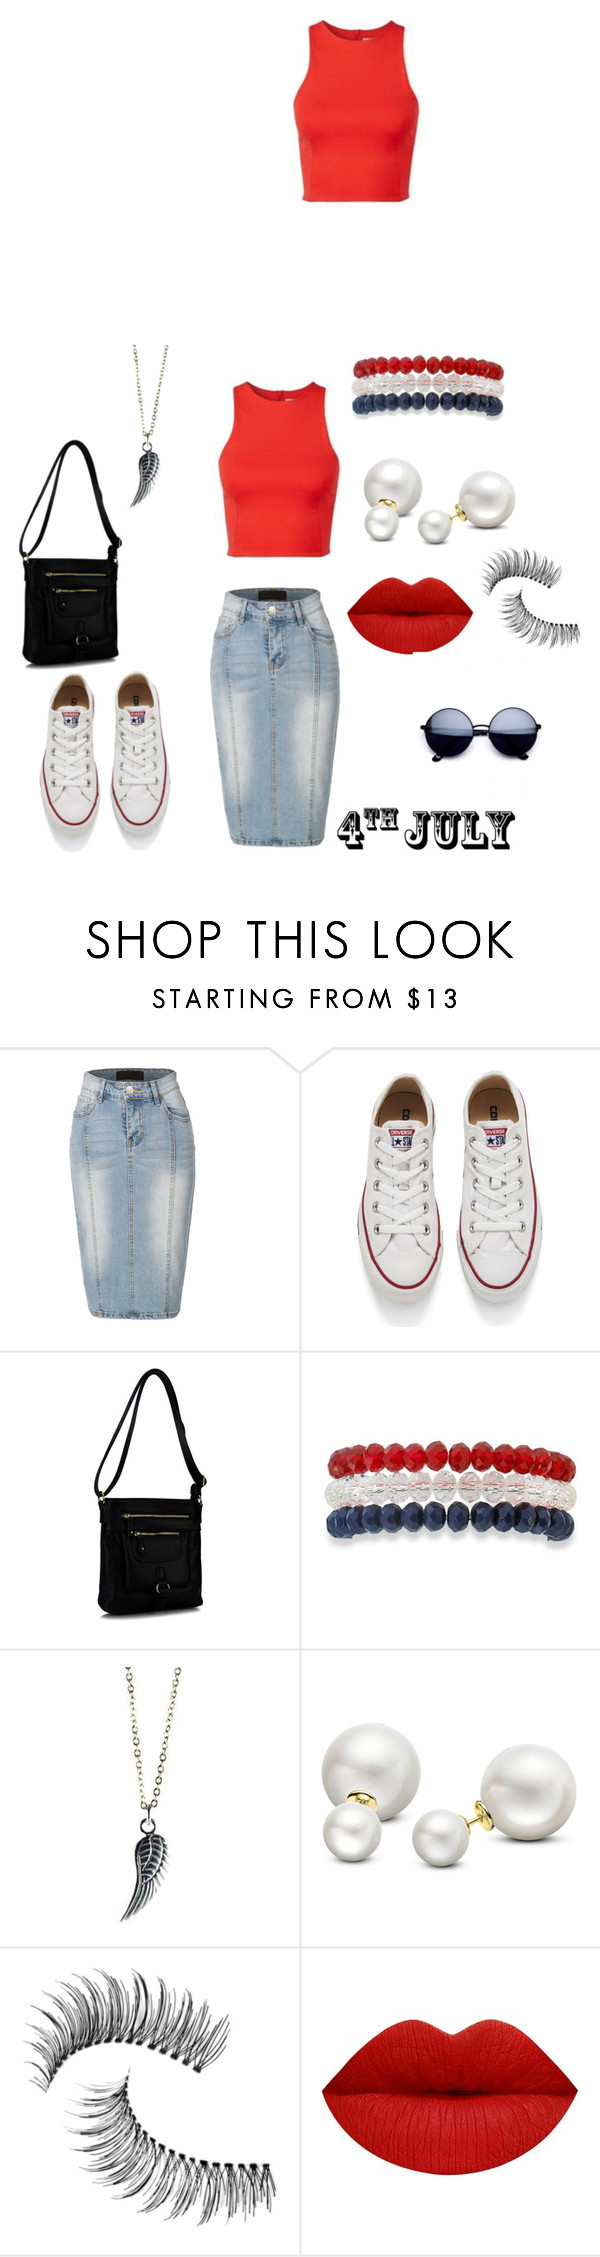 """4th July"" by ninajae ❤ liked on Polyvore featuring LE3NO, Converse, Rimen & Co., Kim Rogers, Allurez and Trish McEvoy"